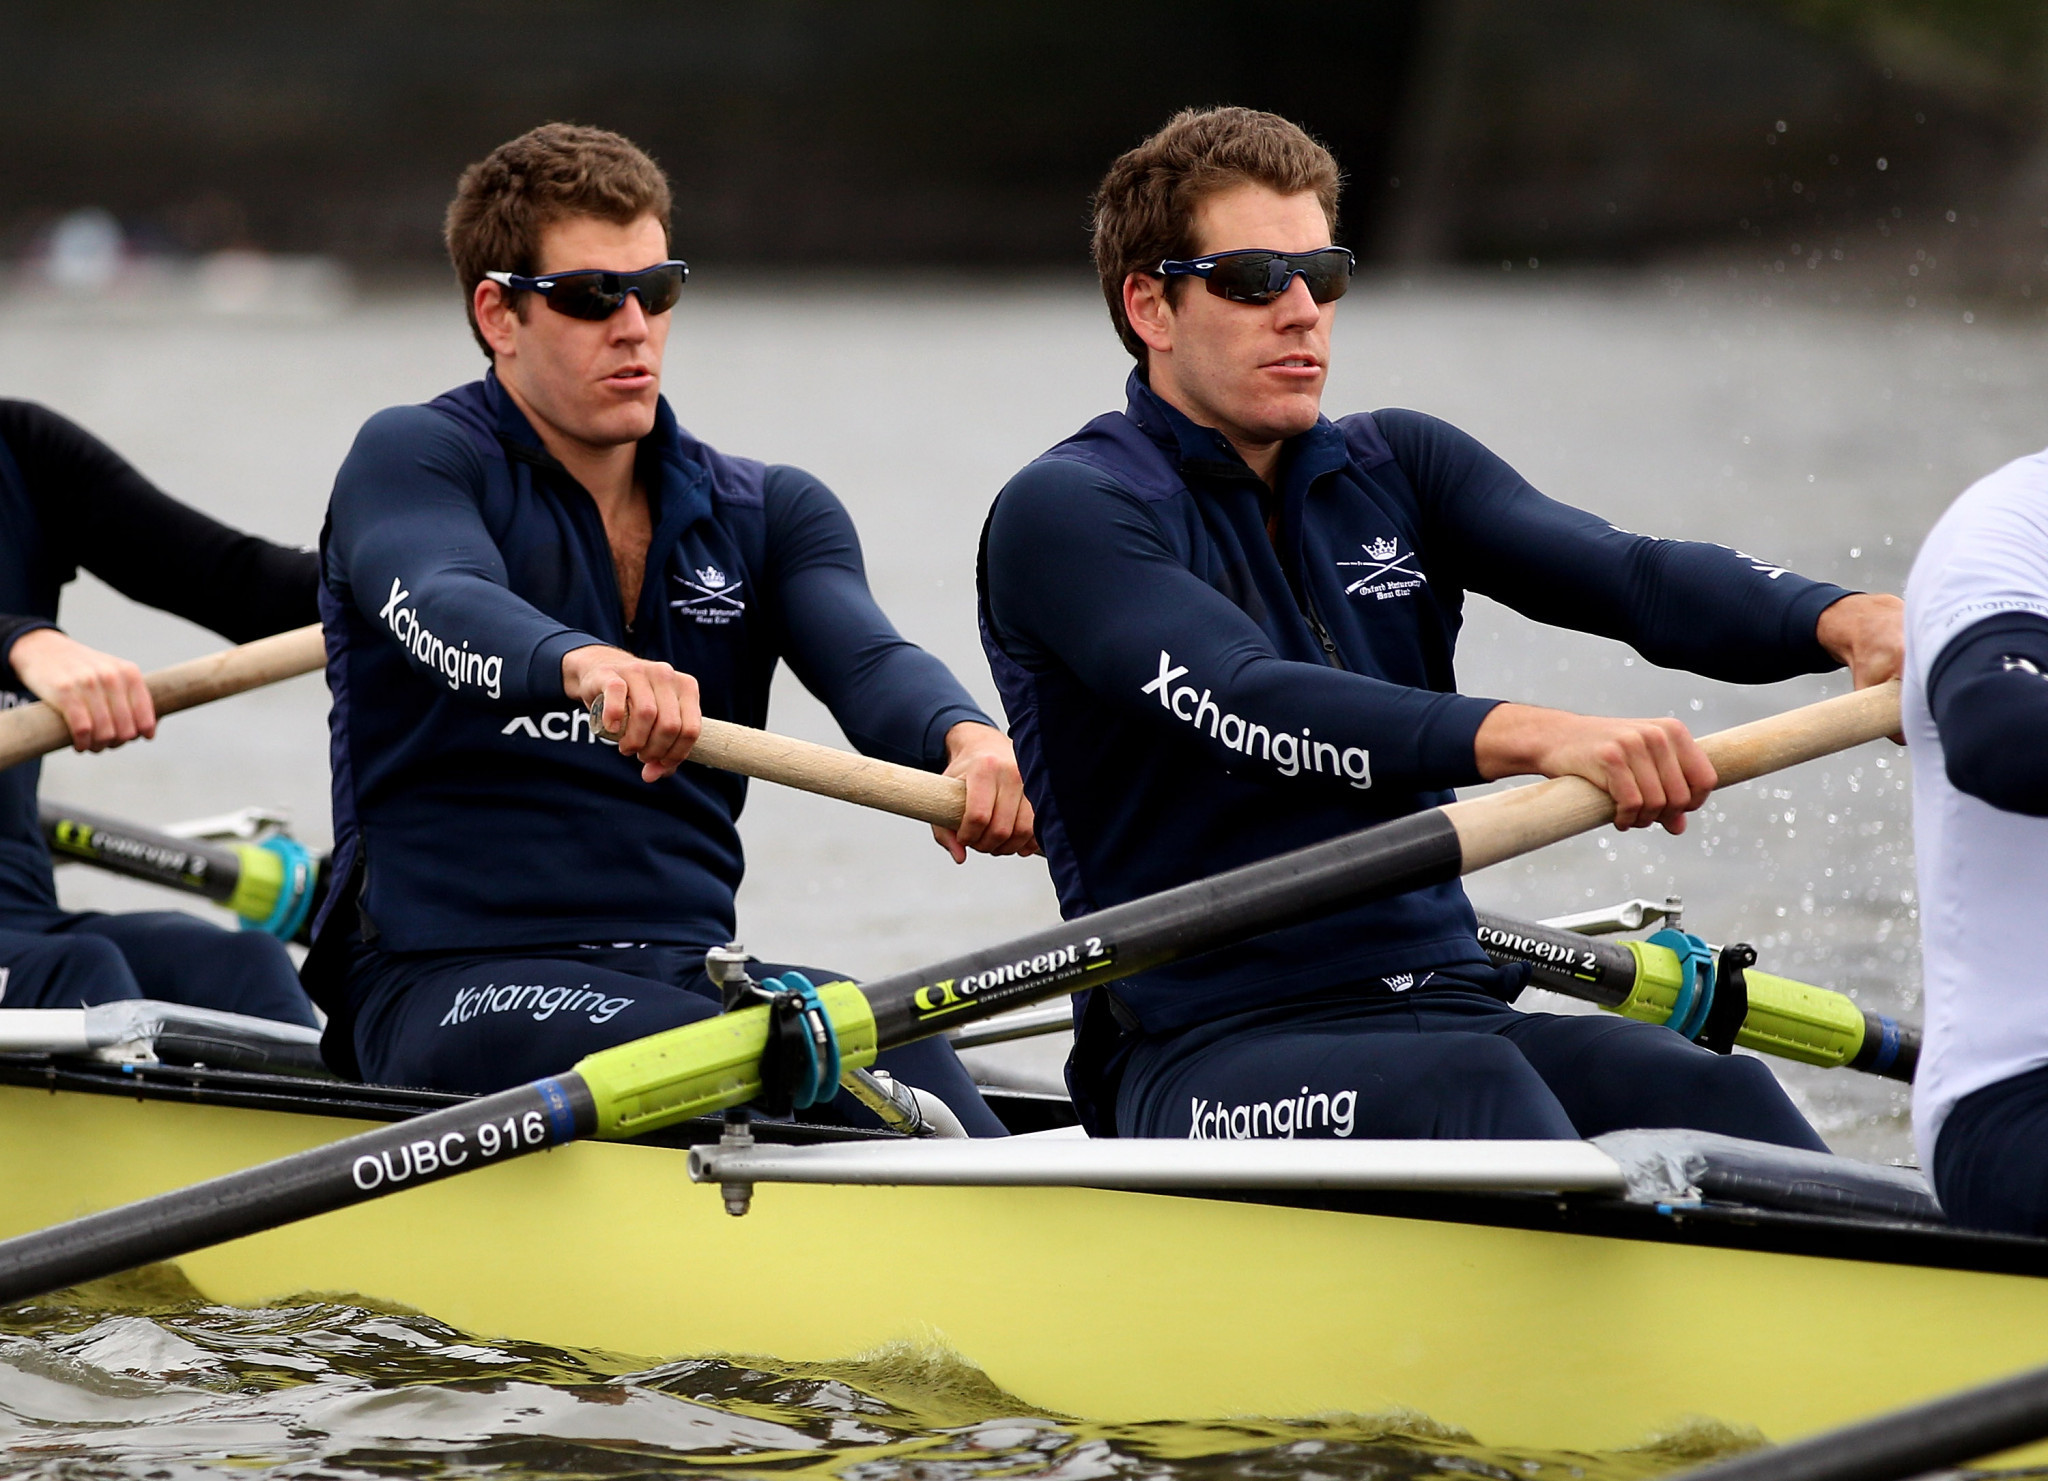 Company founded by twin Olympic oarsmen to sponsor 2021 University Boat Race